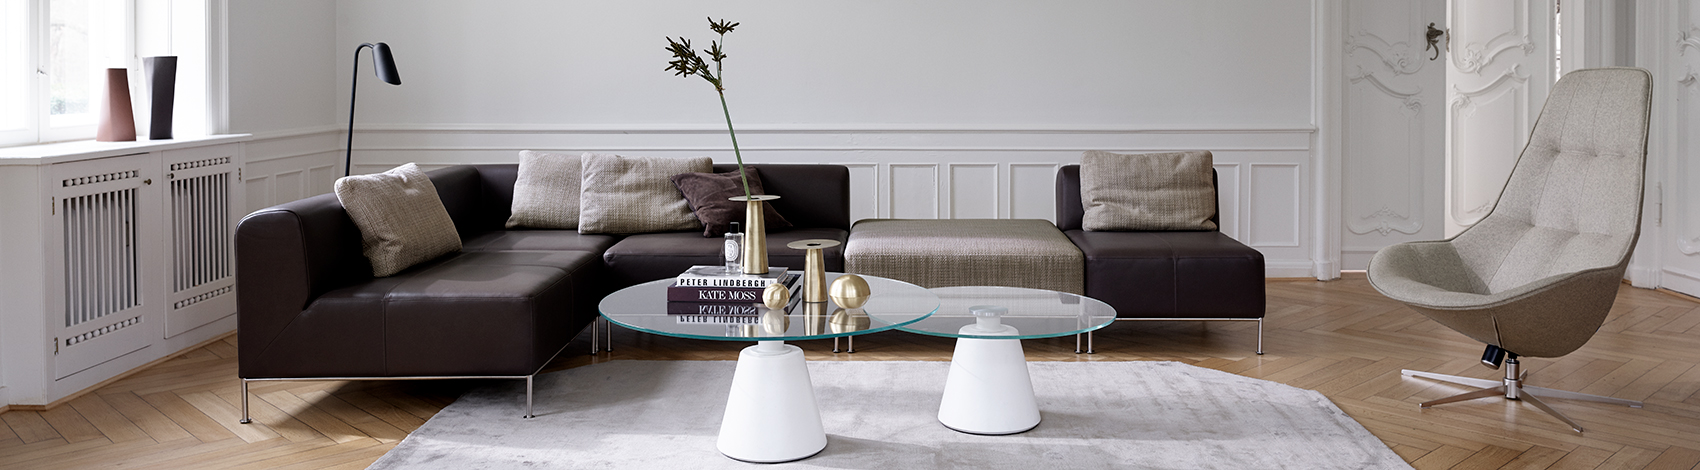 Miami Sofa with footstool and Madrid coffee tables in glass and Boston chair in beige